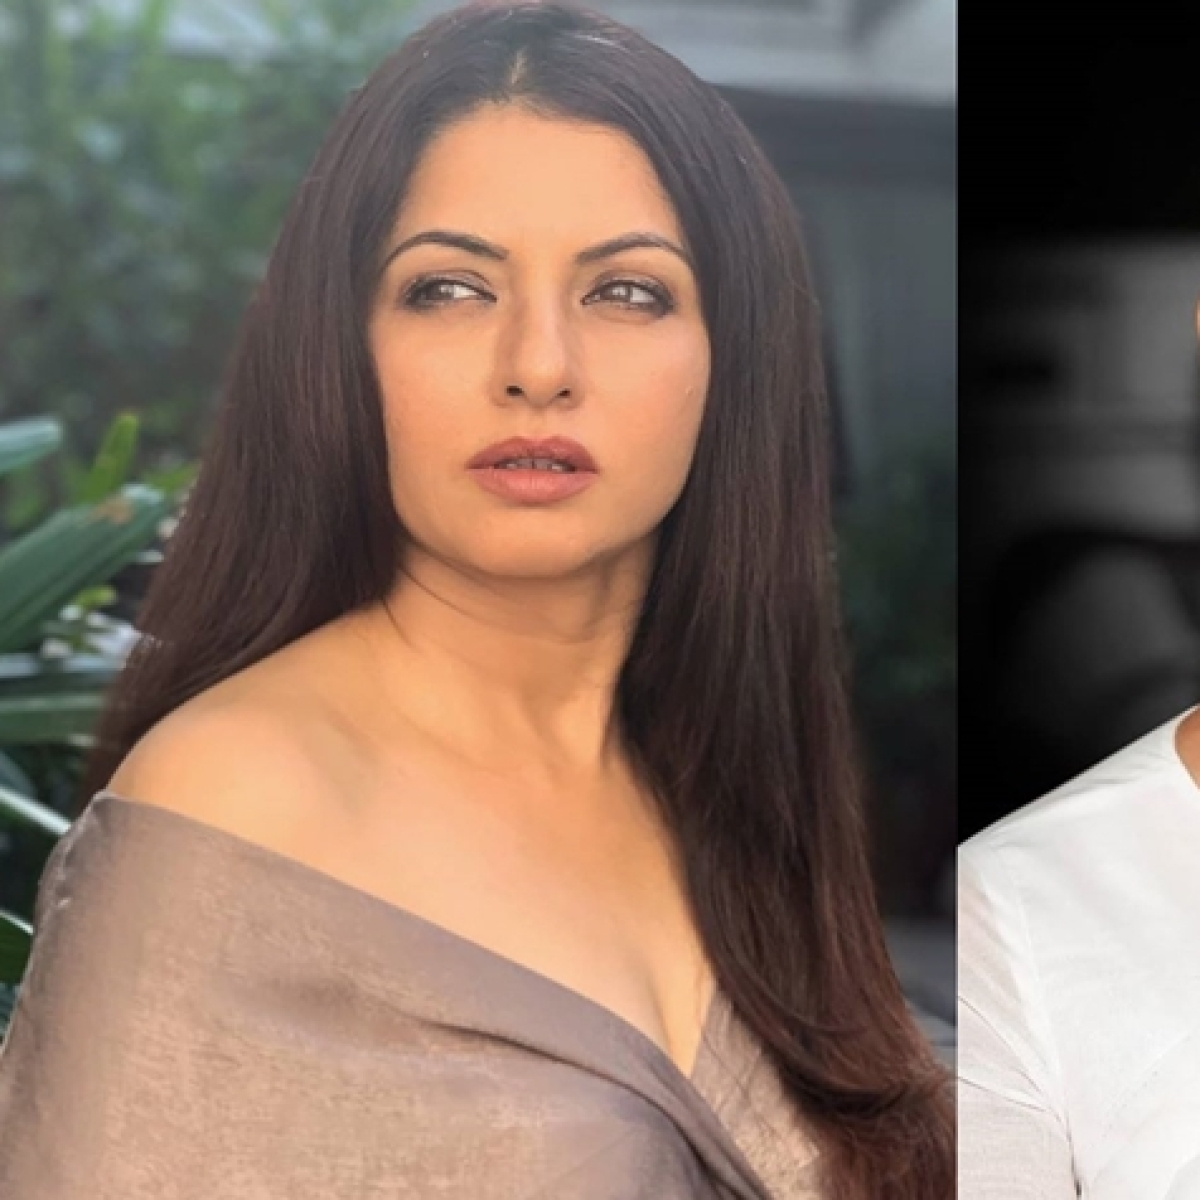 Bhagyashree to star alongside Kangana Ranaut in Jayalalithaa biopic 'Thalaivi'